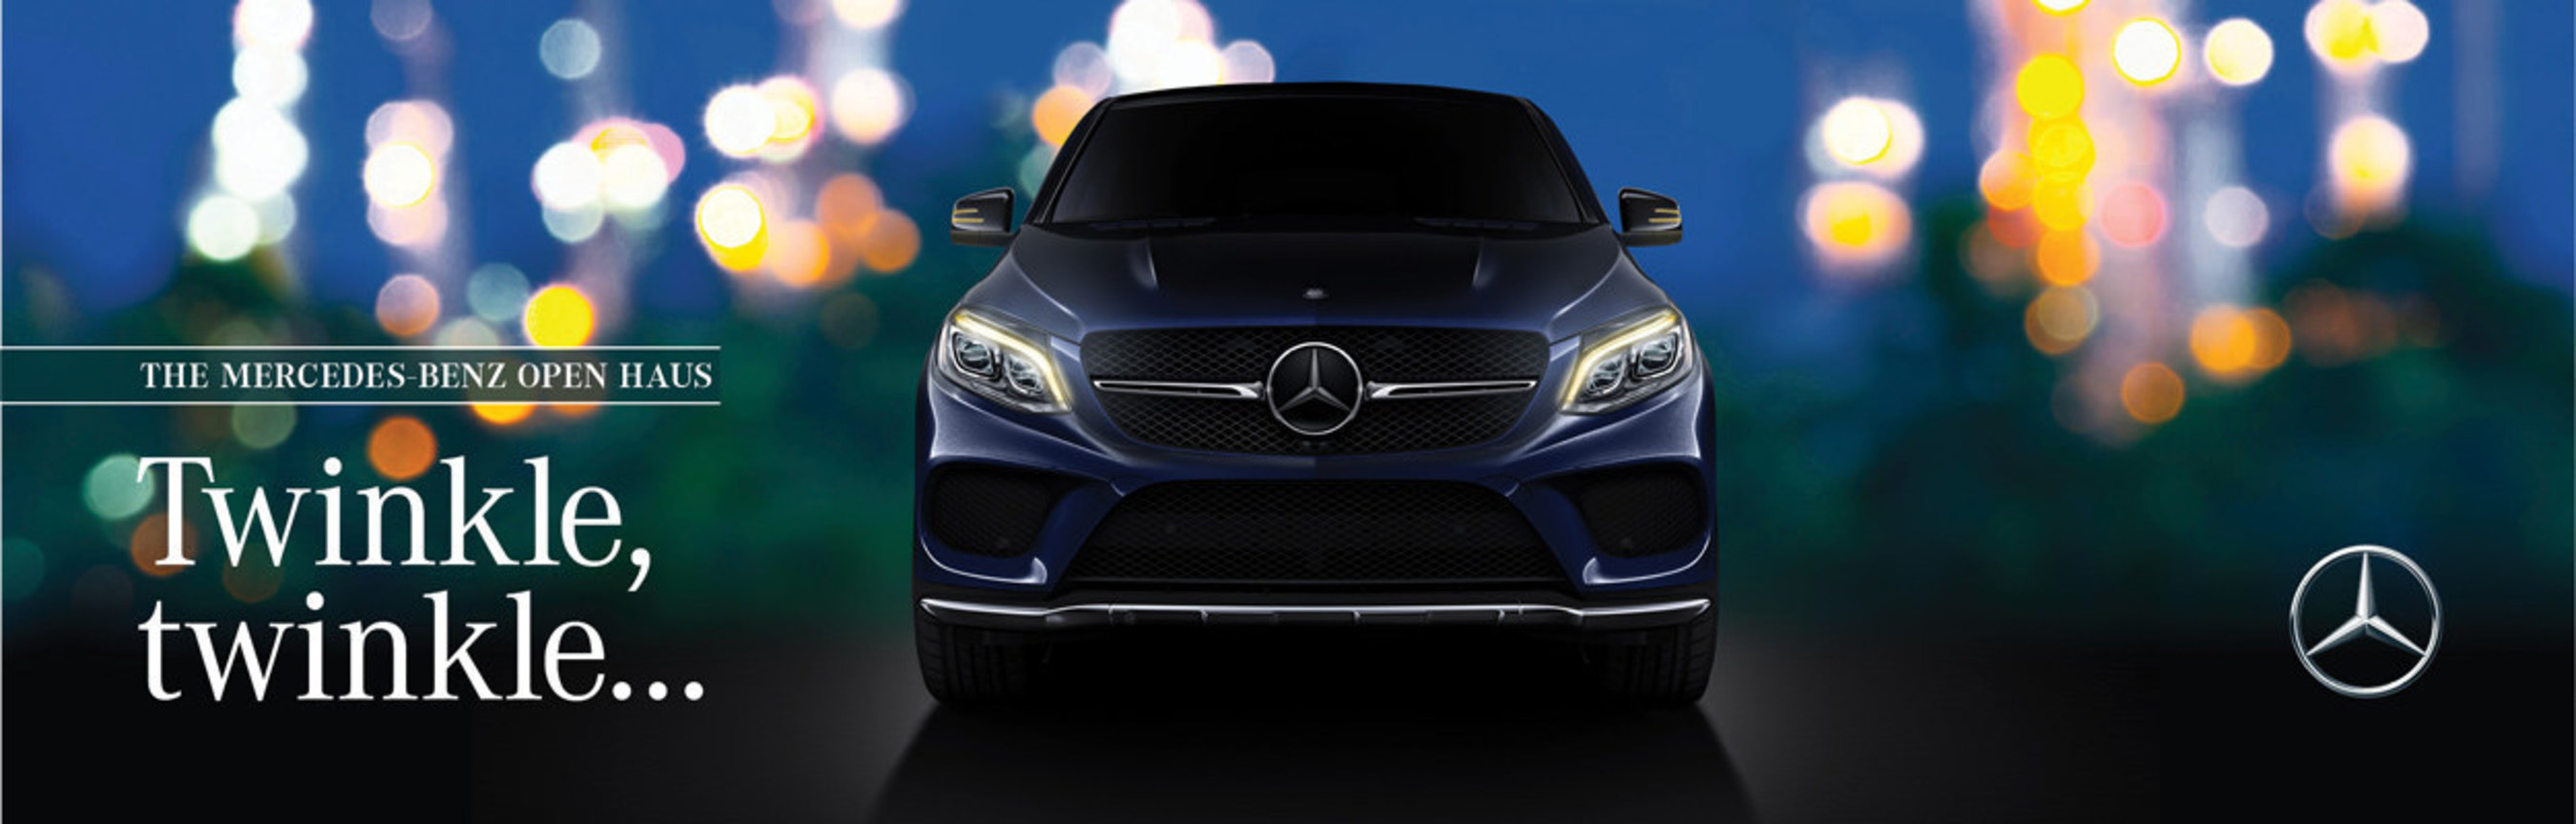 Mercedes-Benz dealer hosts open house with free gift incentives in Scottsdale